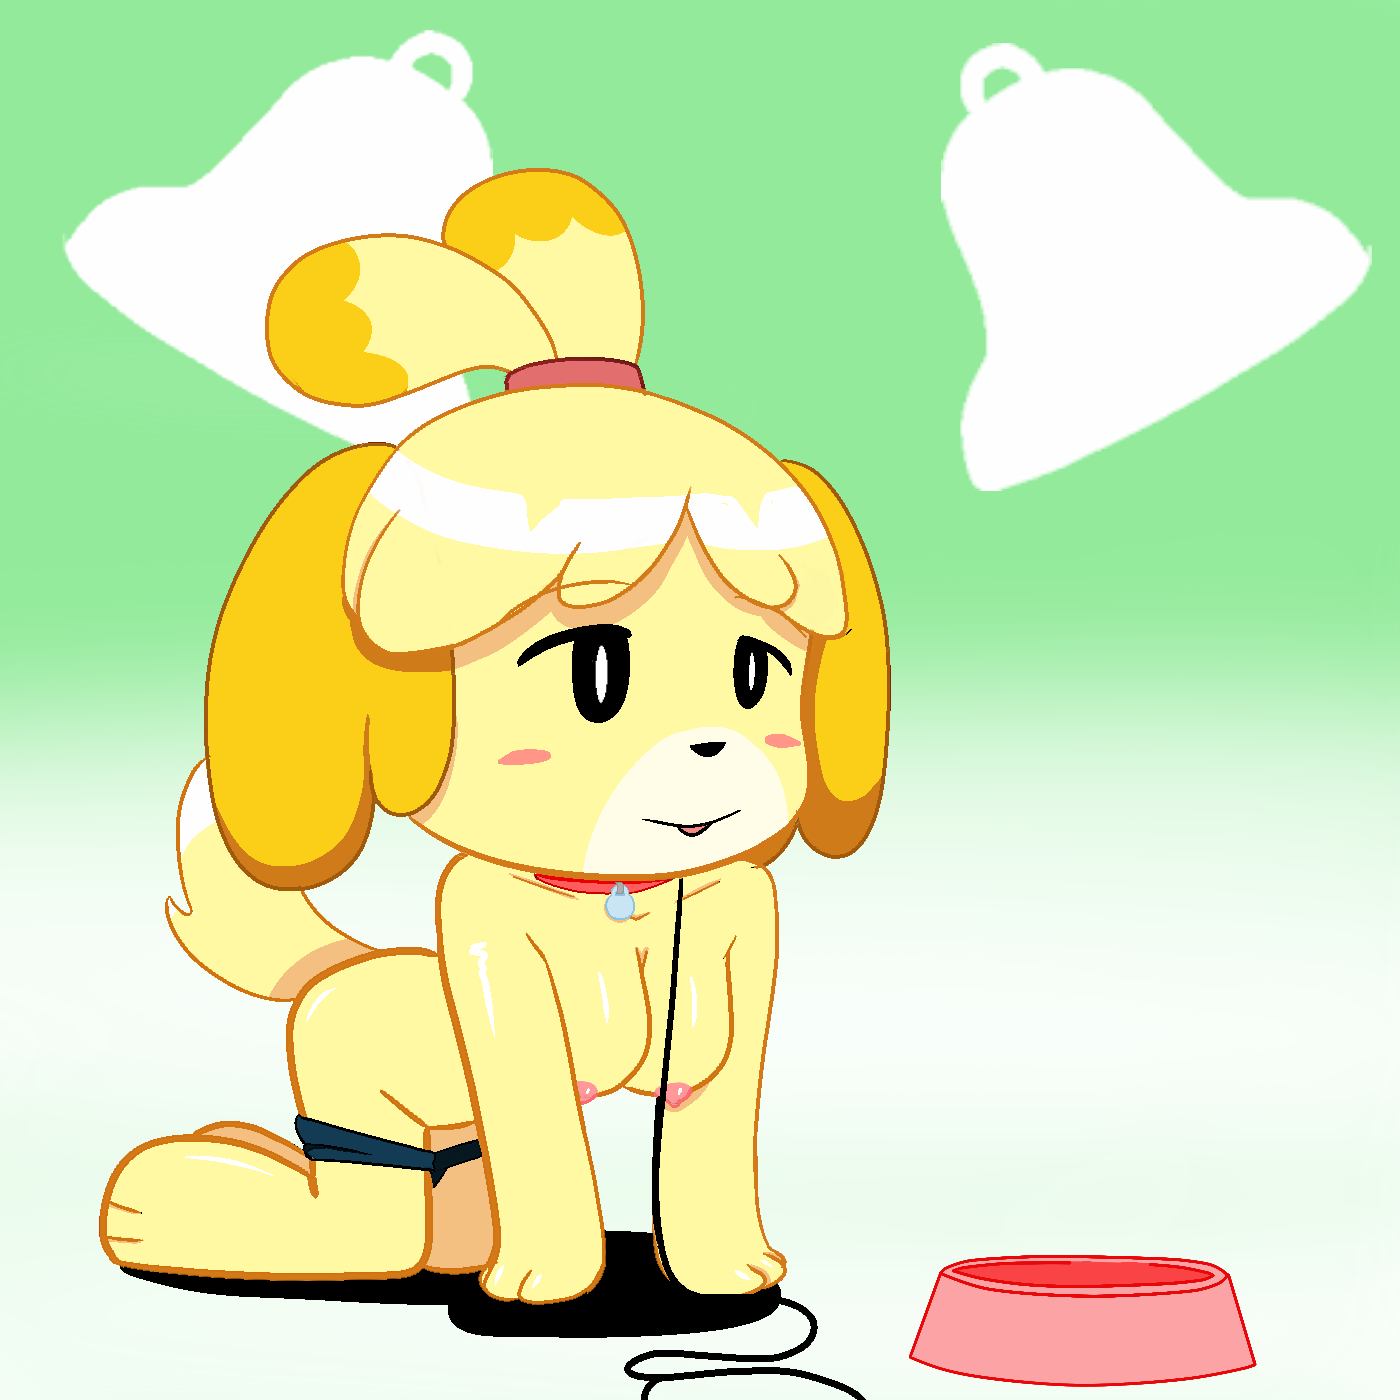 Animal Crossing's Isabelle